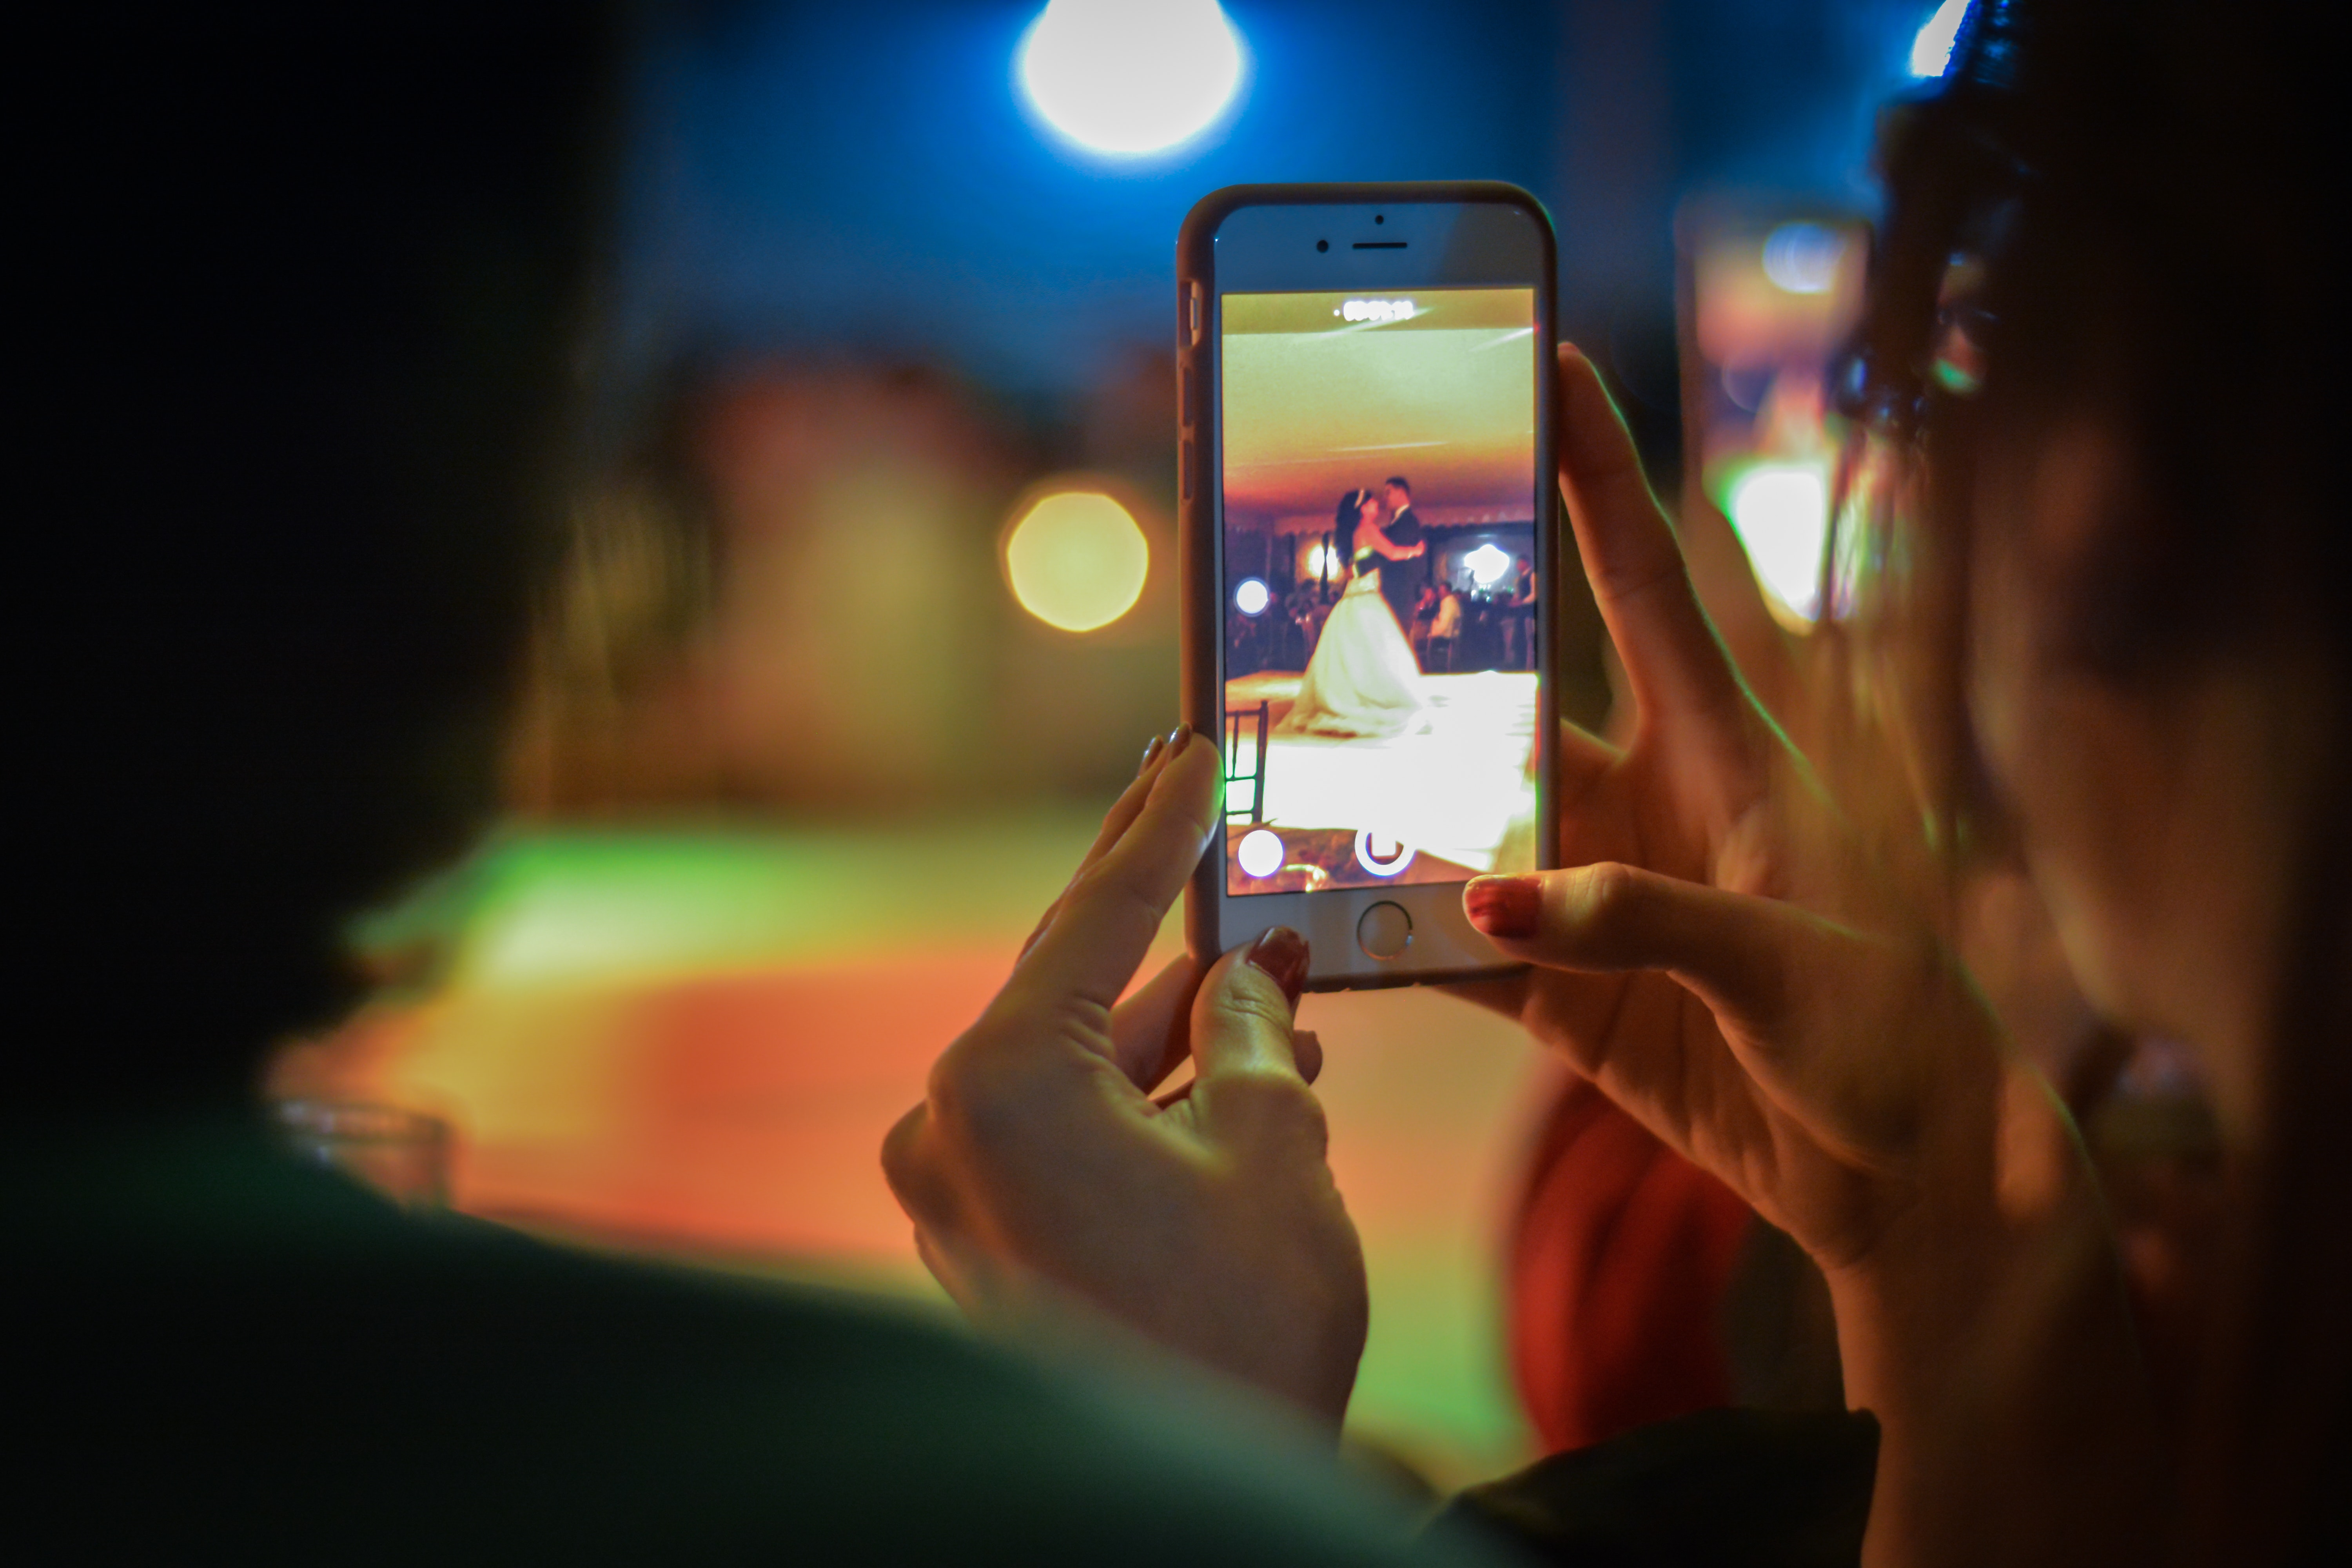 Close-up of Woman Using Mobile Phone at Night, Apple, People, Wedding, Video recording, HQ Photo